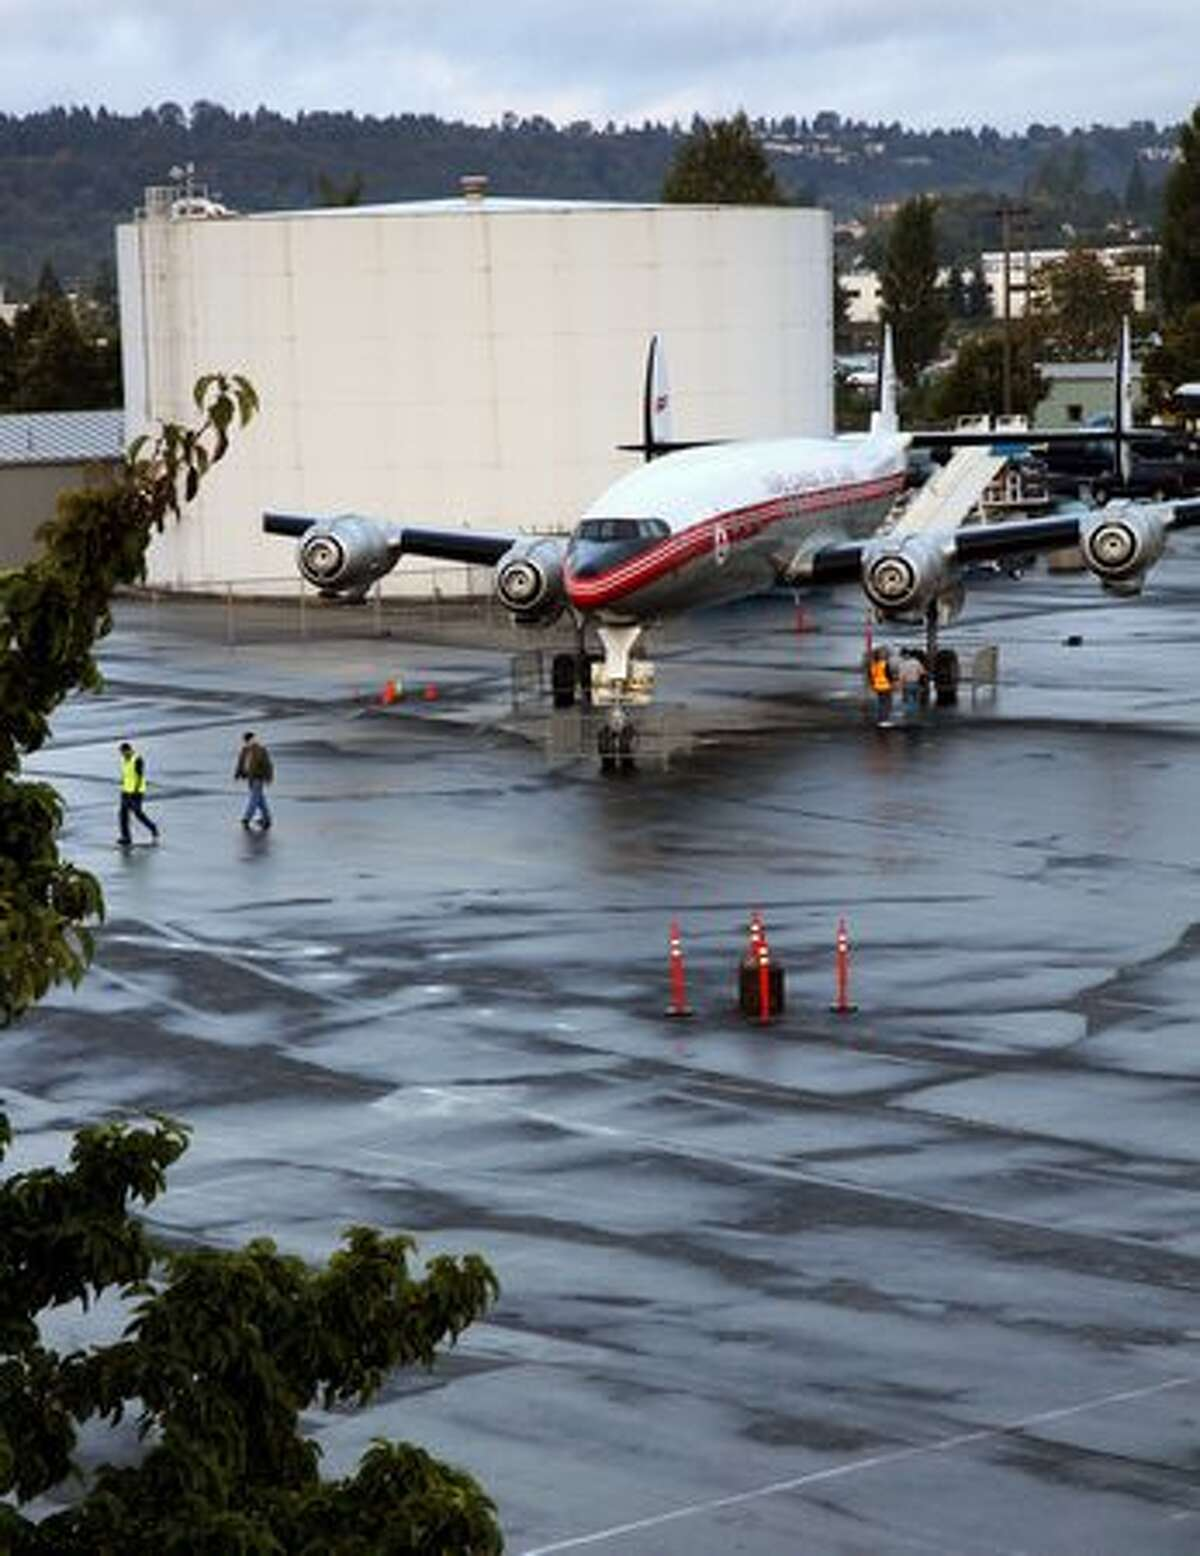 The Seattle Museum of Flight's Lockheed 1049G Super Constellation at its new home in the museum's Airpark. (Ted Huetter/Museum of Flight)